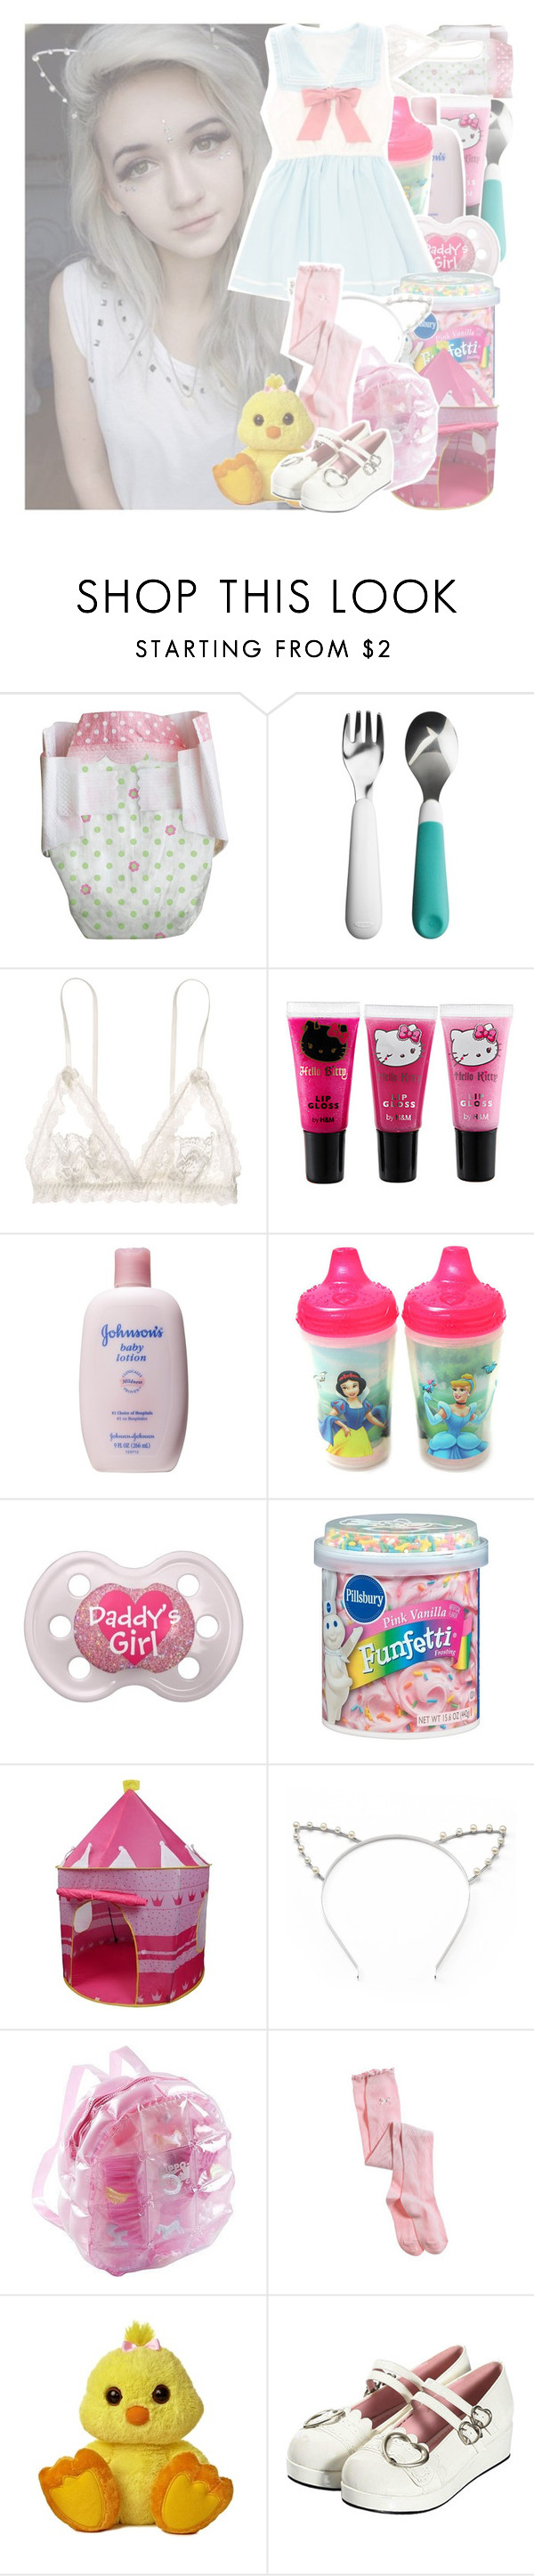 """""""{ootd   duckie really likes frosting like me} evelyn"""" by madness-anxns ❤ liked on Polyvore featuring OXO, Hanky Panky, Hello Kitty, Johnson's Baby, The First Years, Pink Vanilla, Candie's and Aerie"""